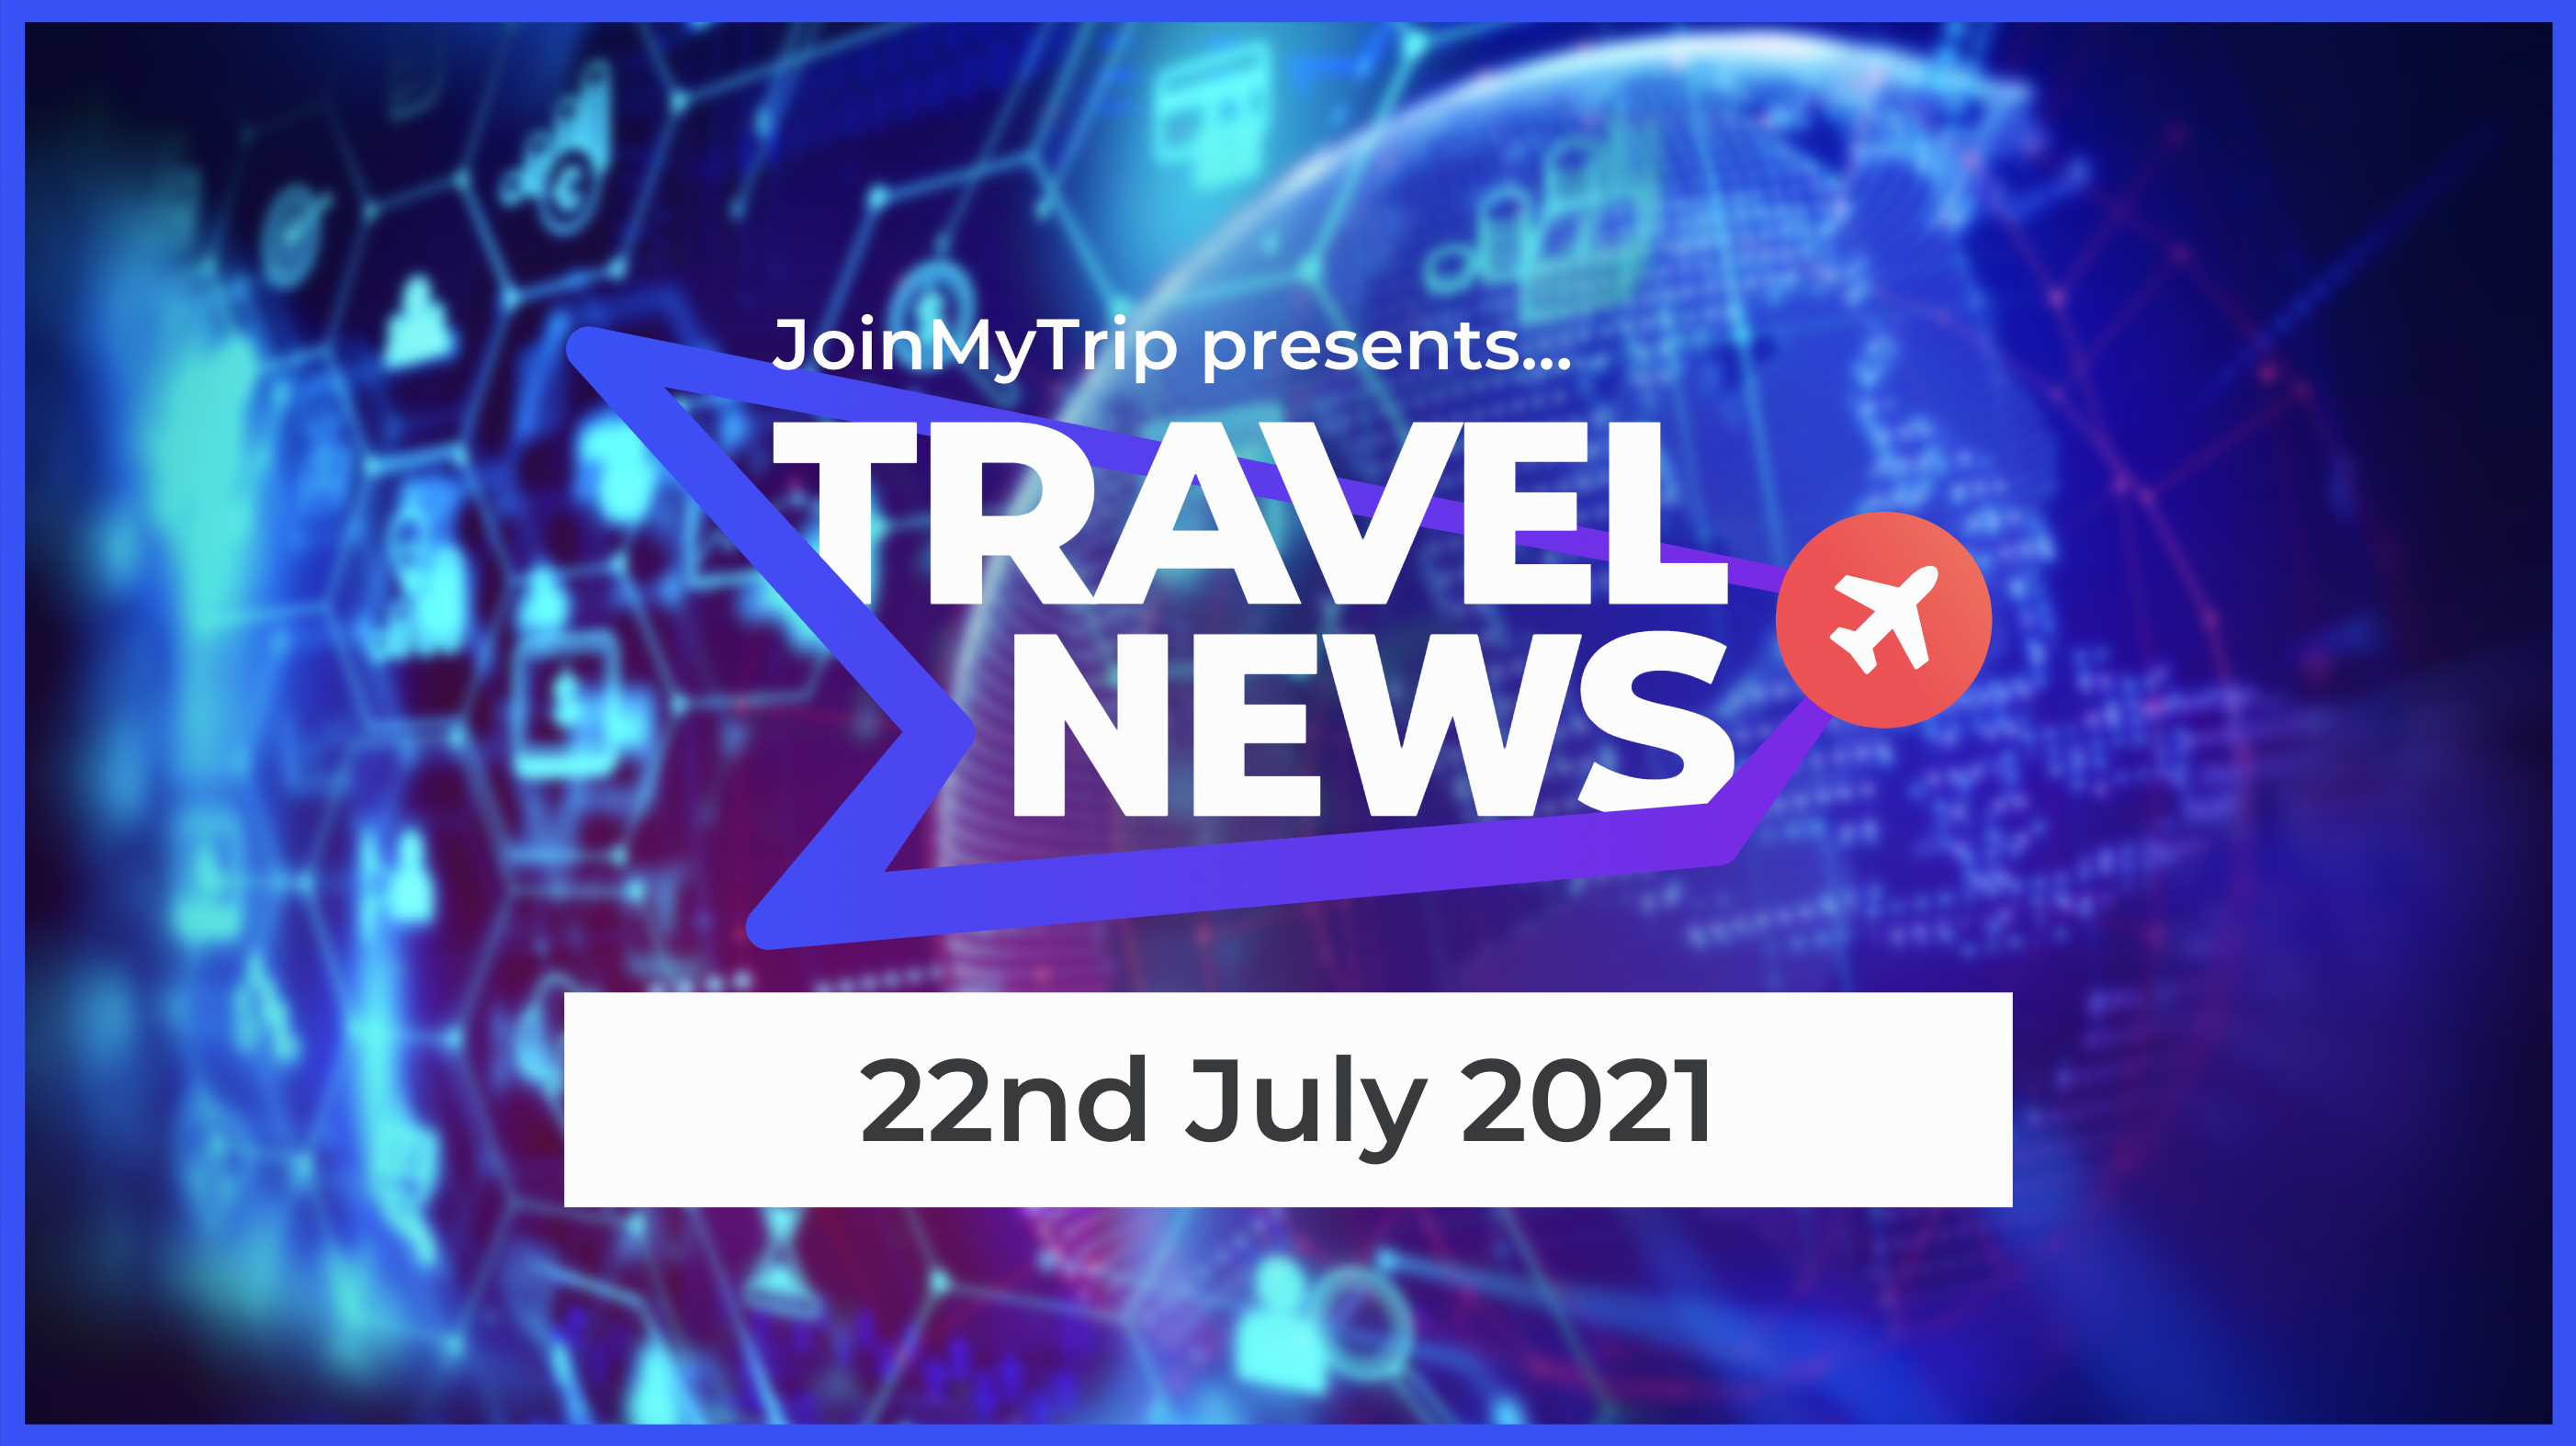 Travel News on the 22nd of July 2021